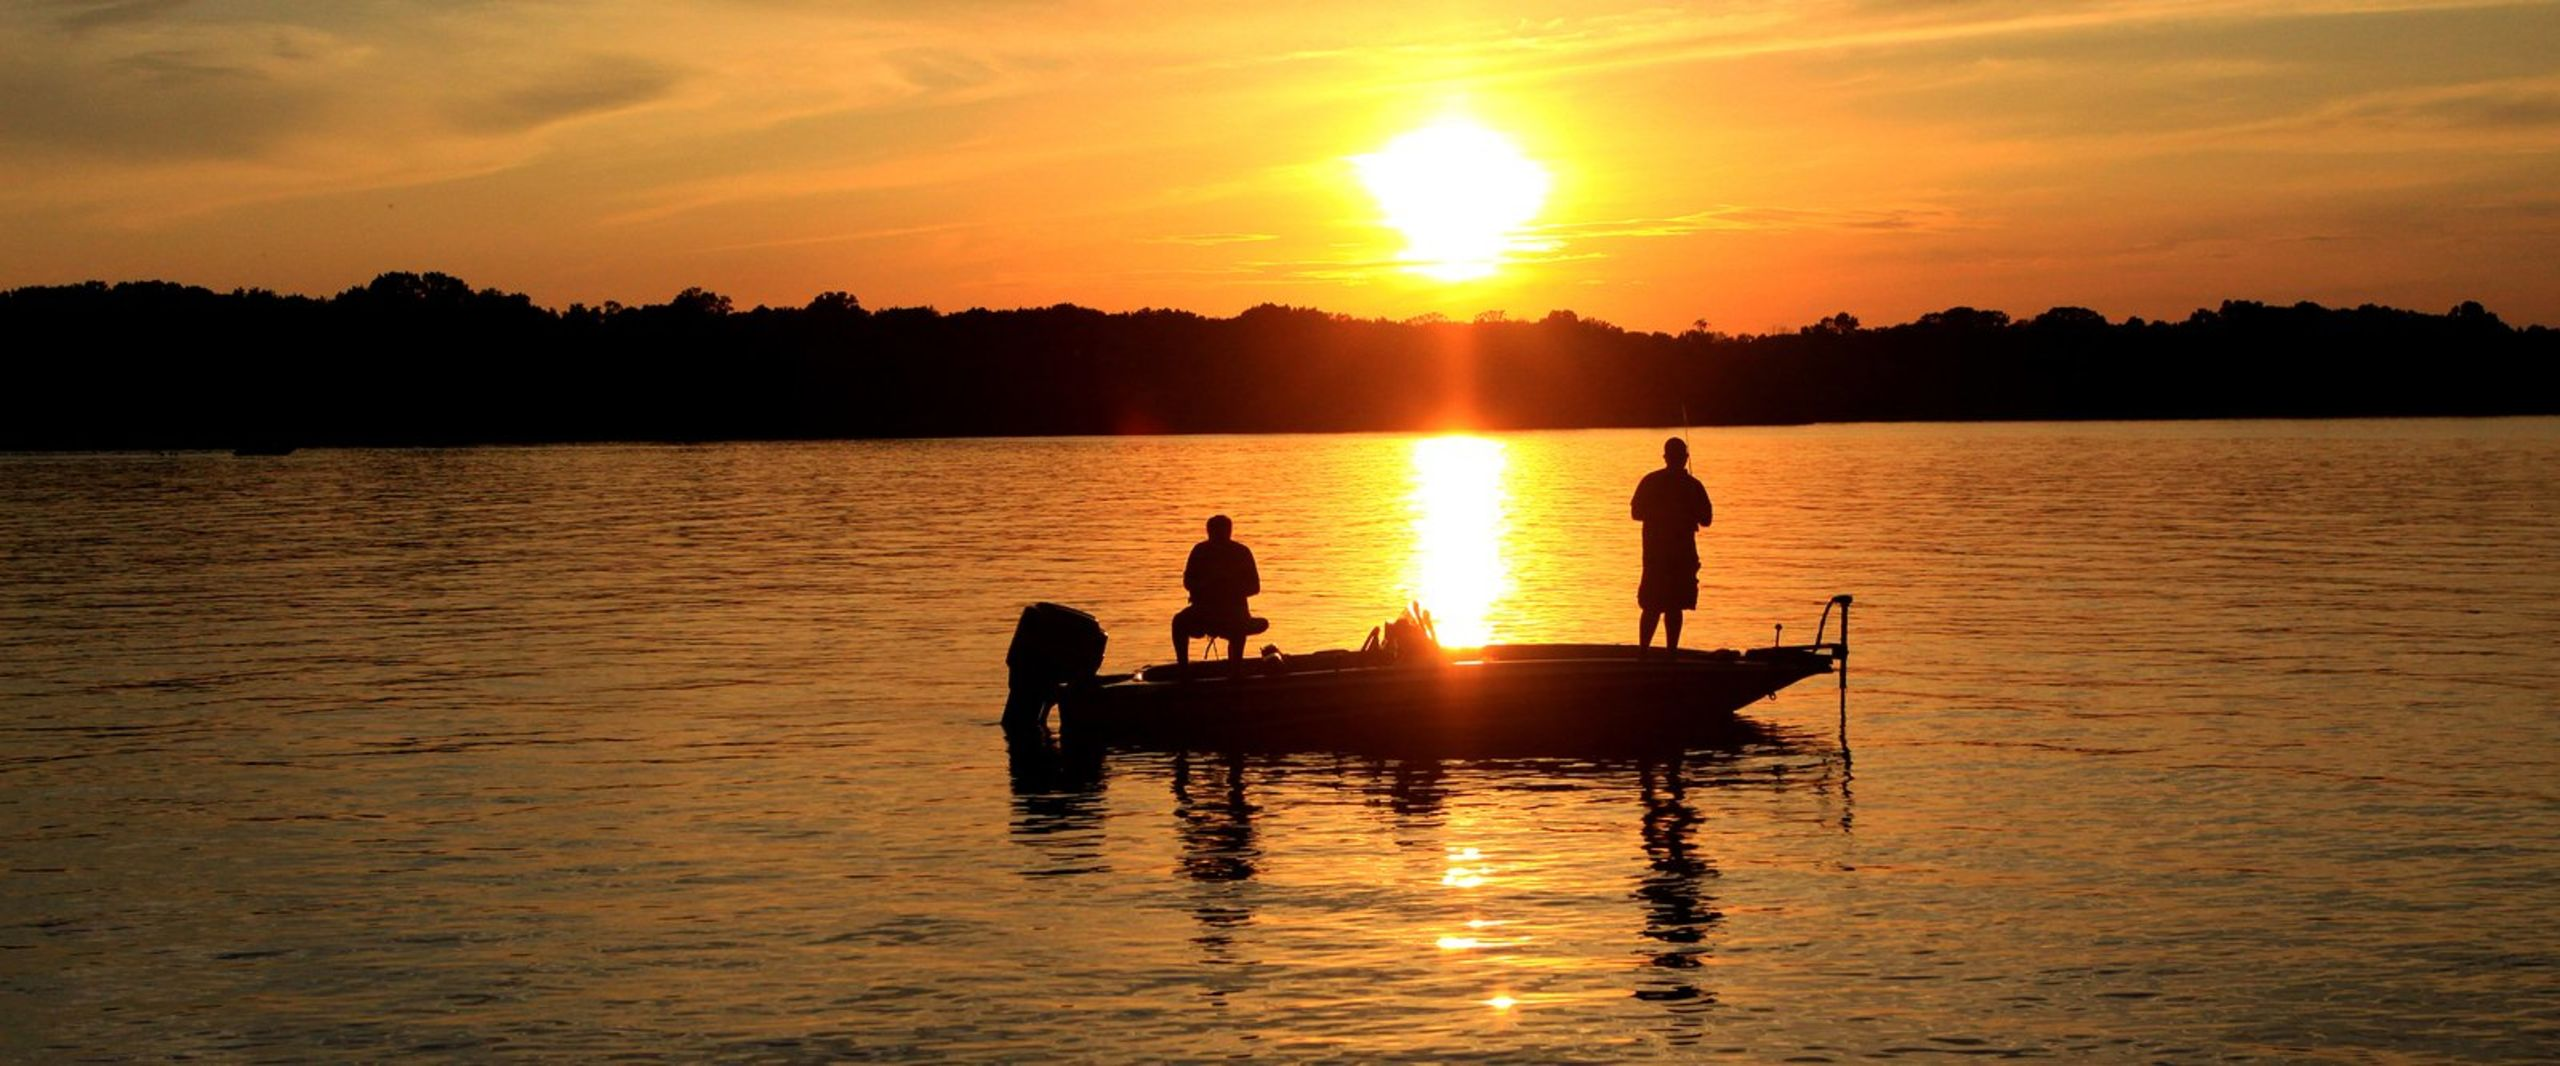 TRANQUIL FISHING AT SUNRISE IN THE INDIAN RIVER LAGOON